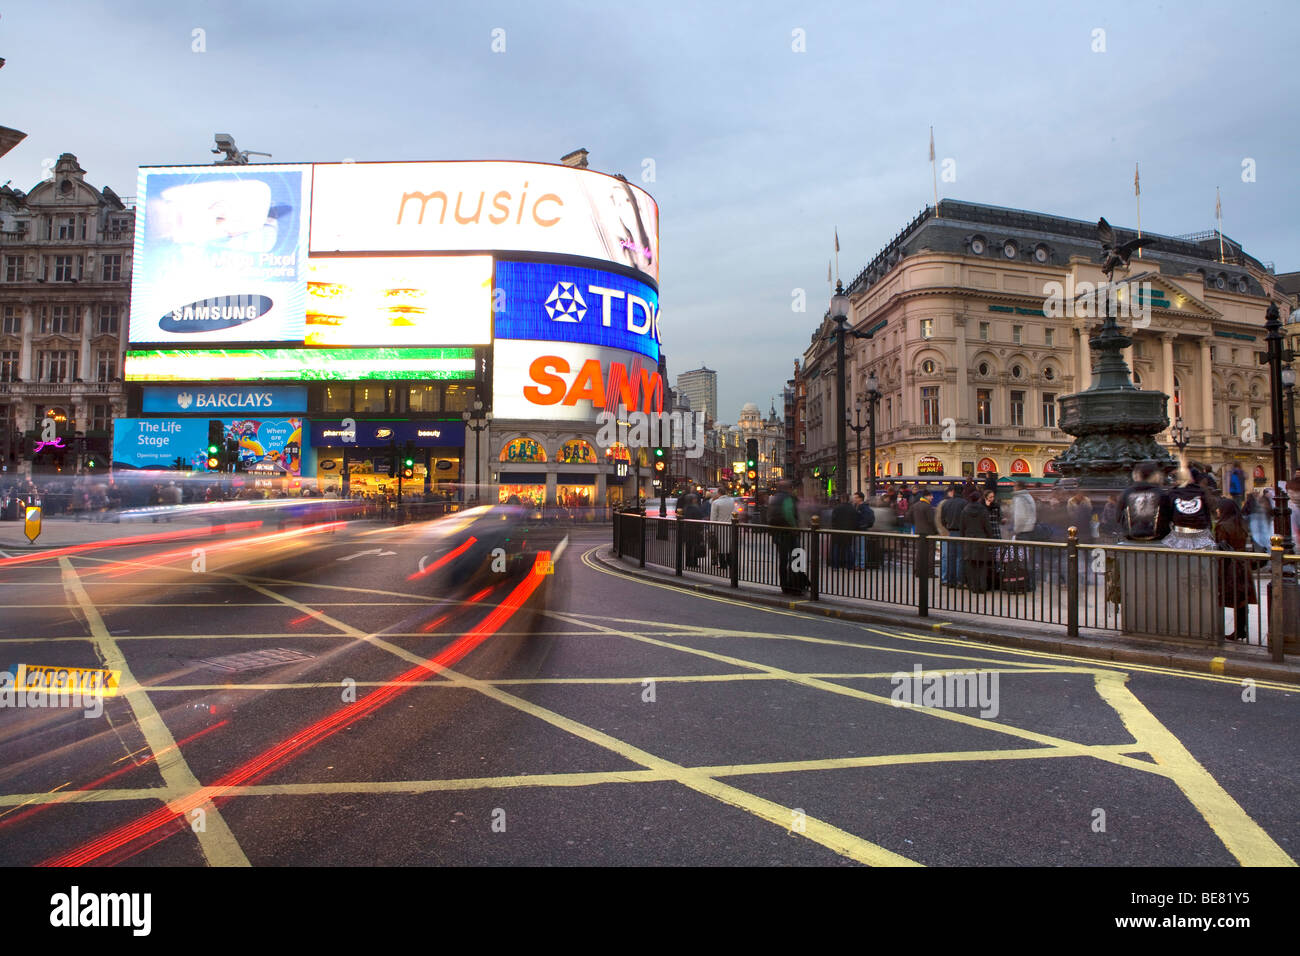 Picadilly Circus, London, England, Great Britain, United Kingdom - Stock Image